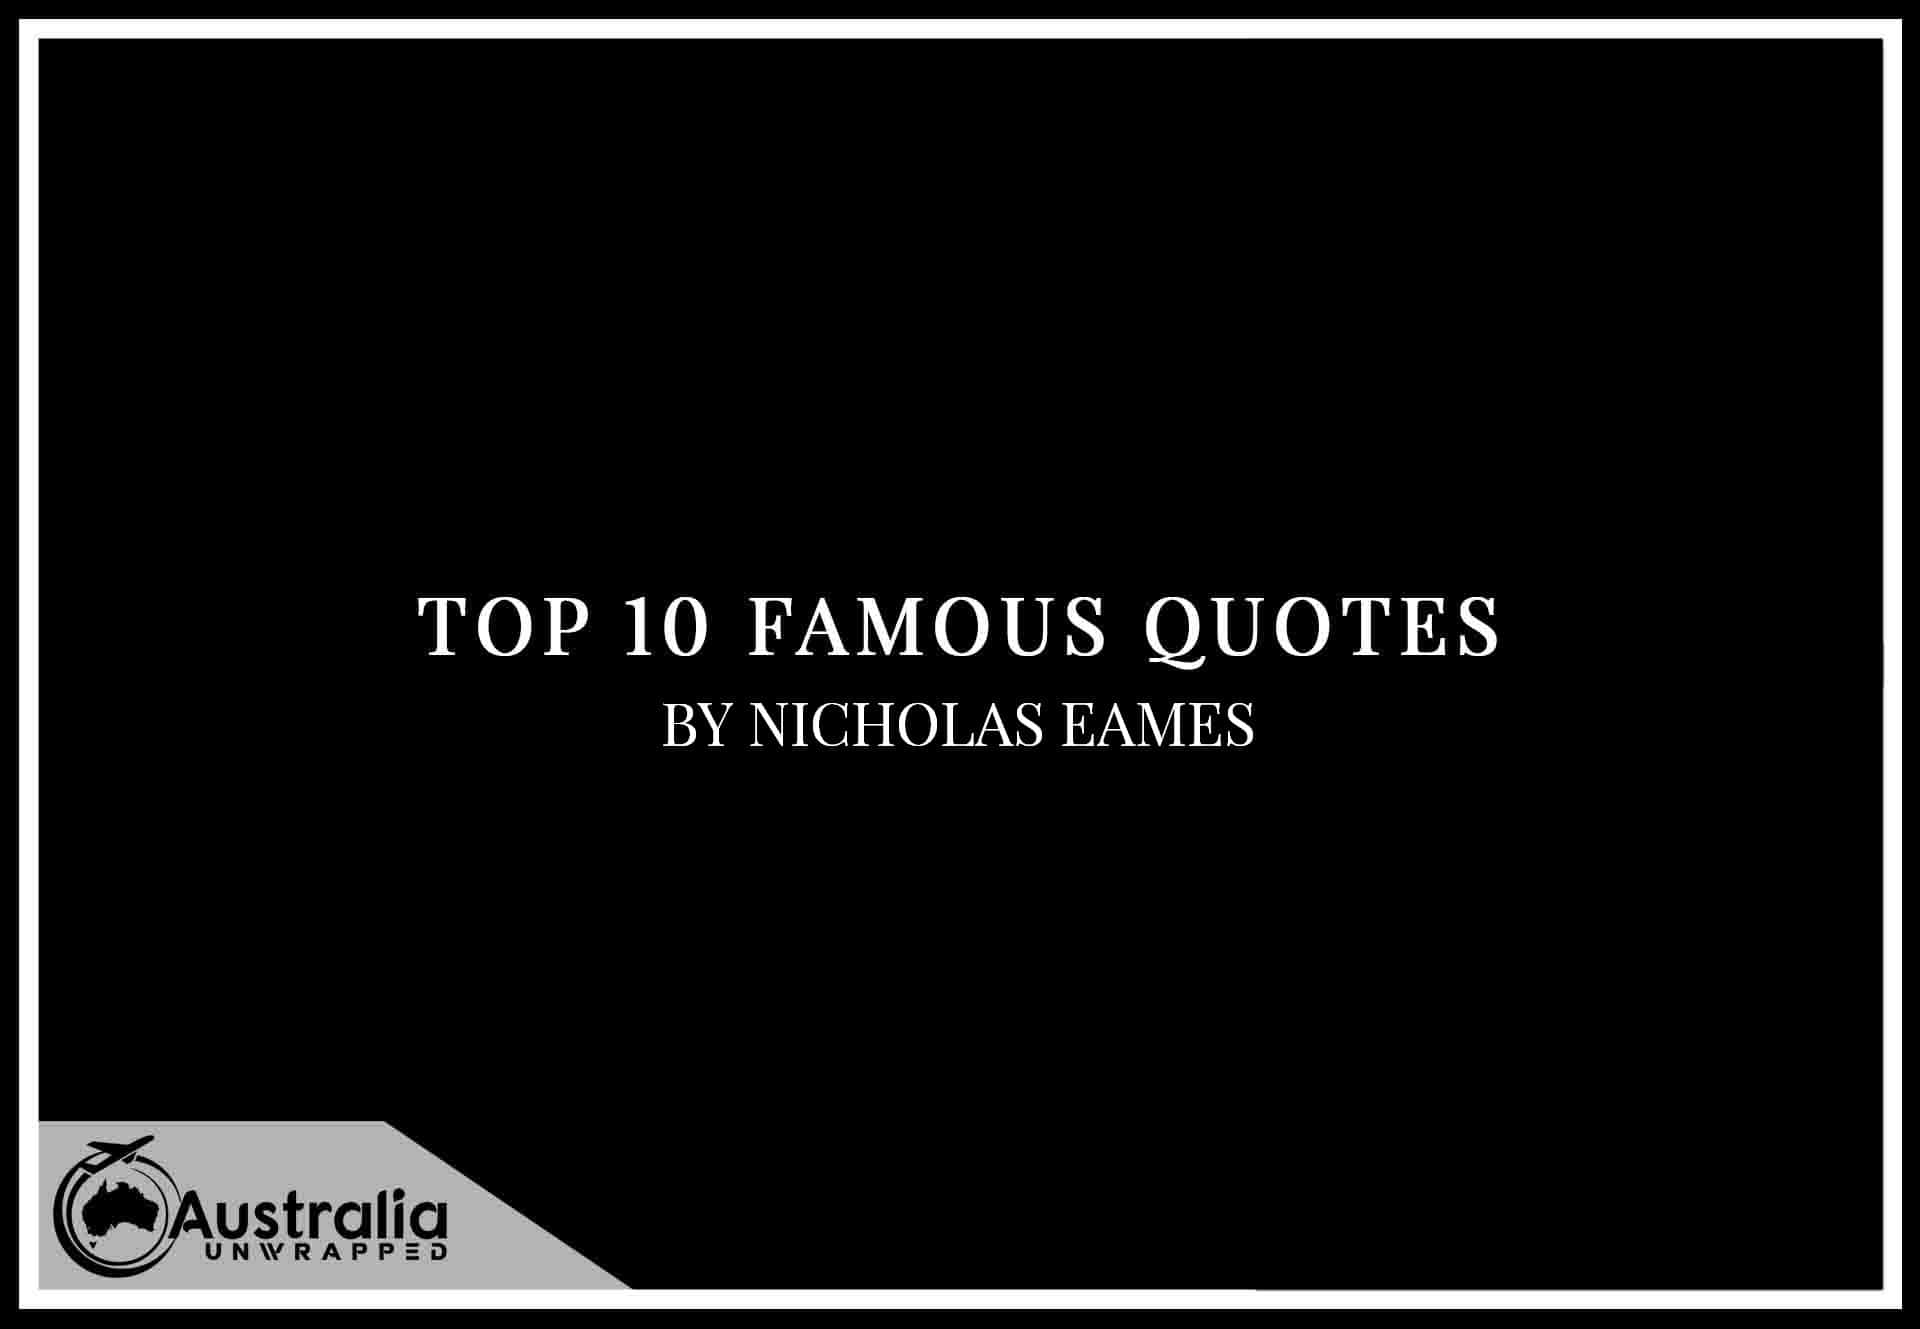 Top 10 Famous Quotes by Author Nicholas Eames